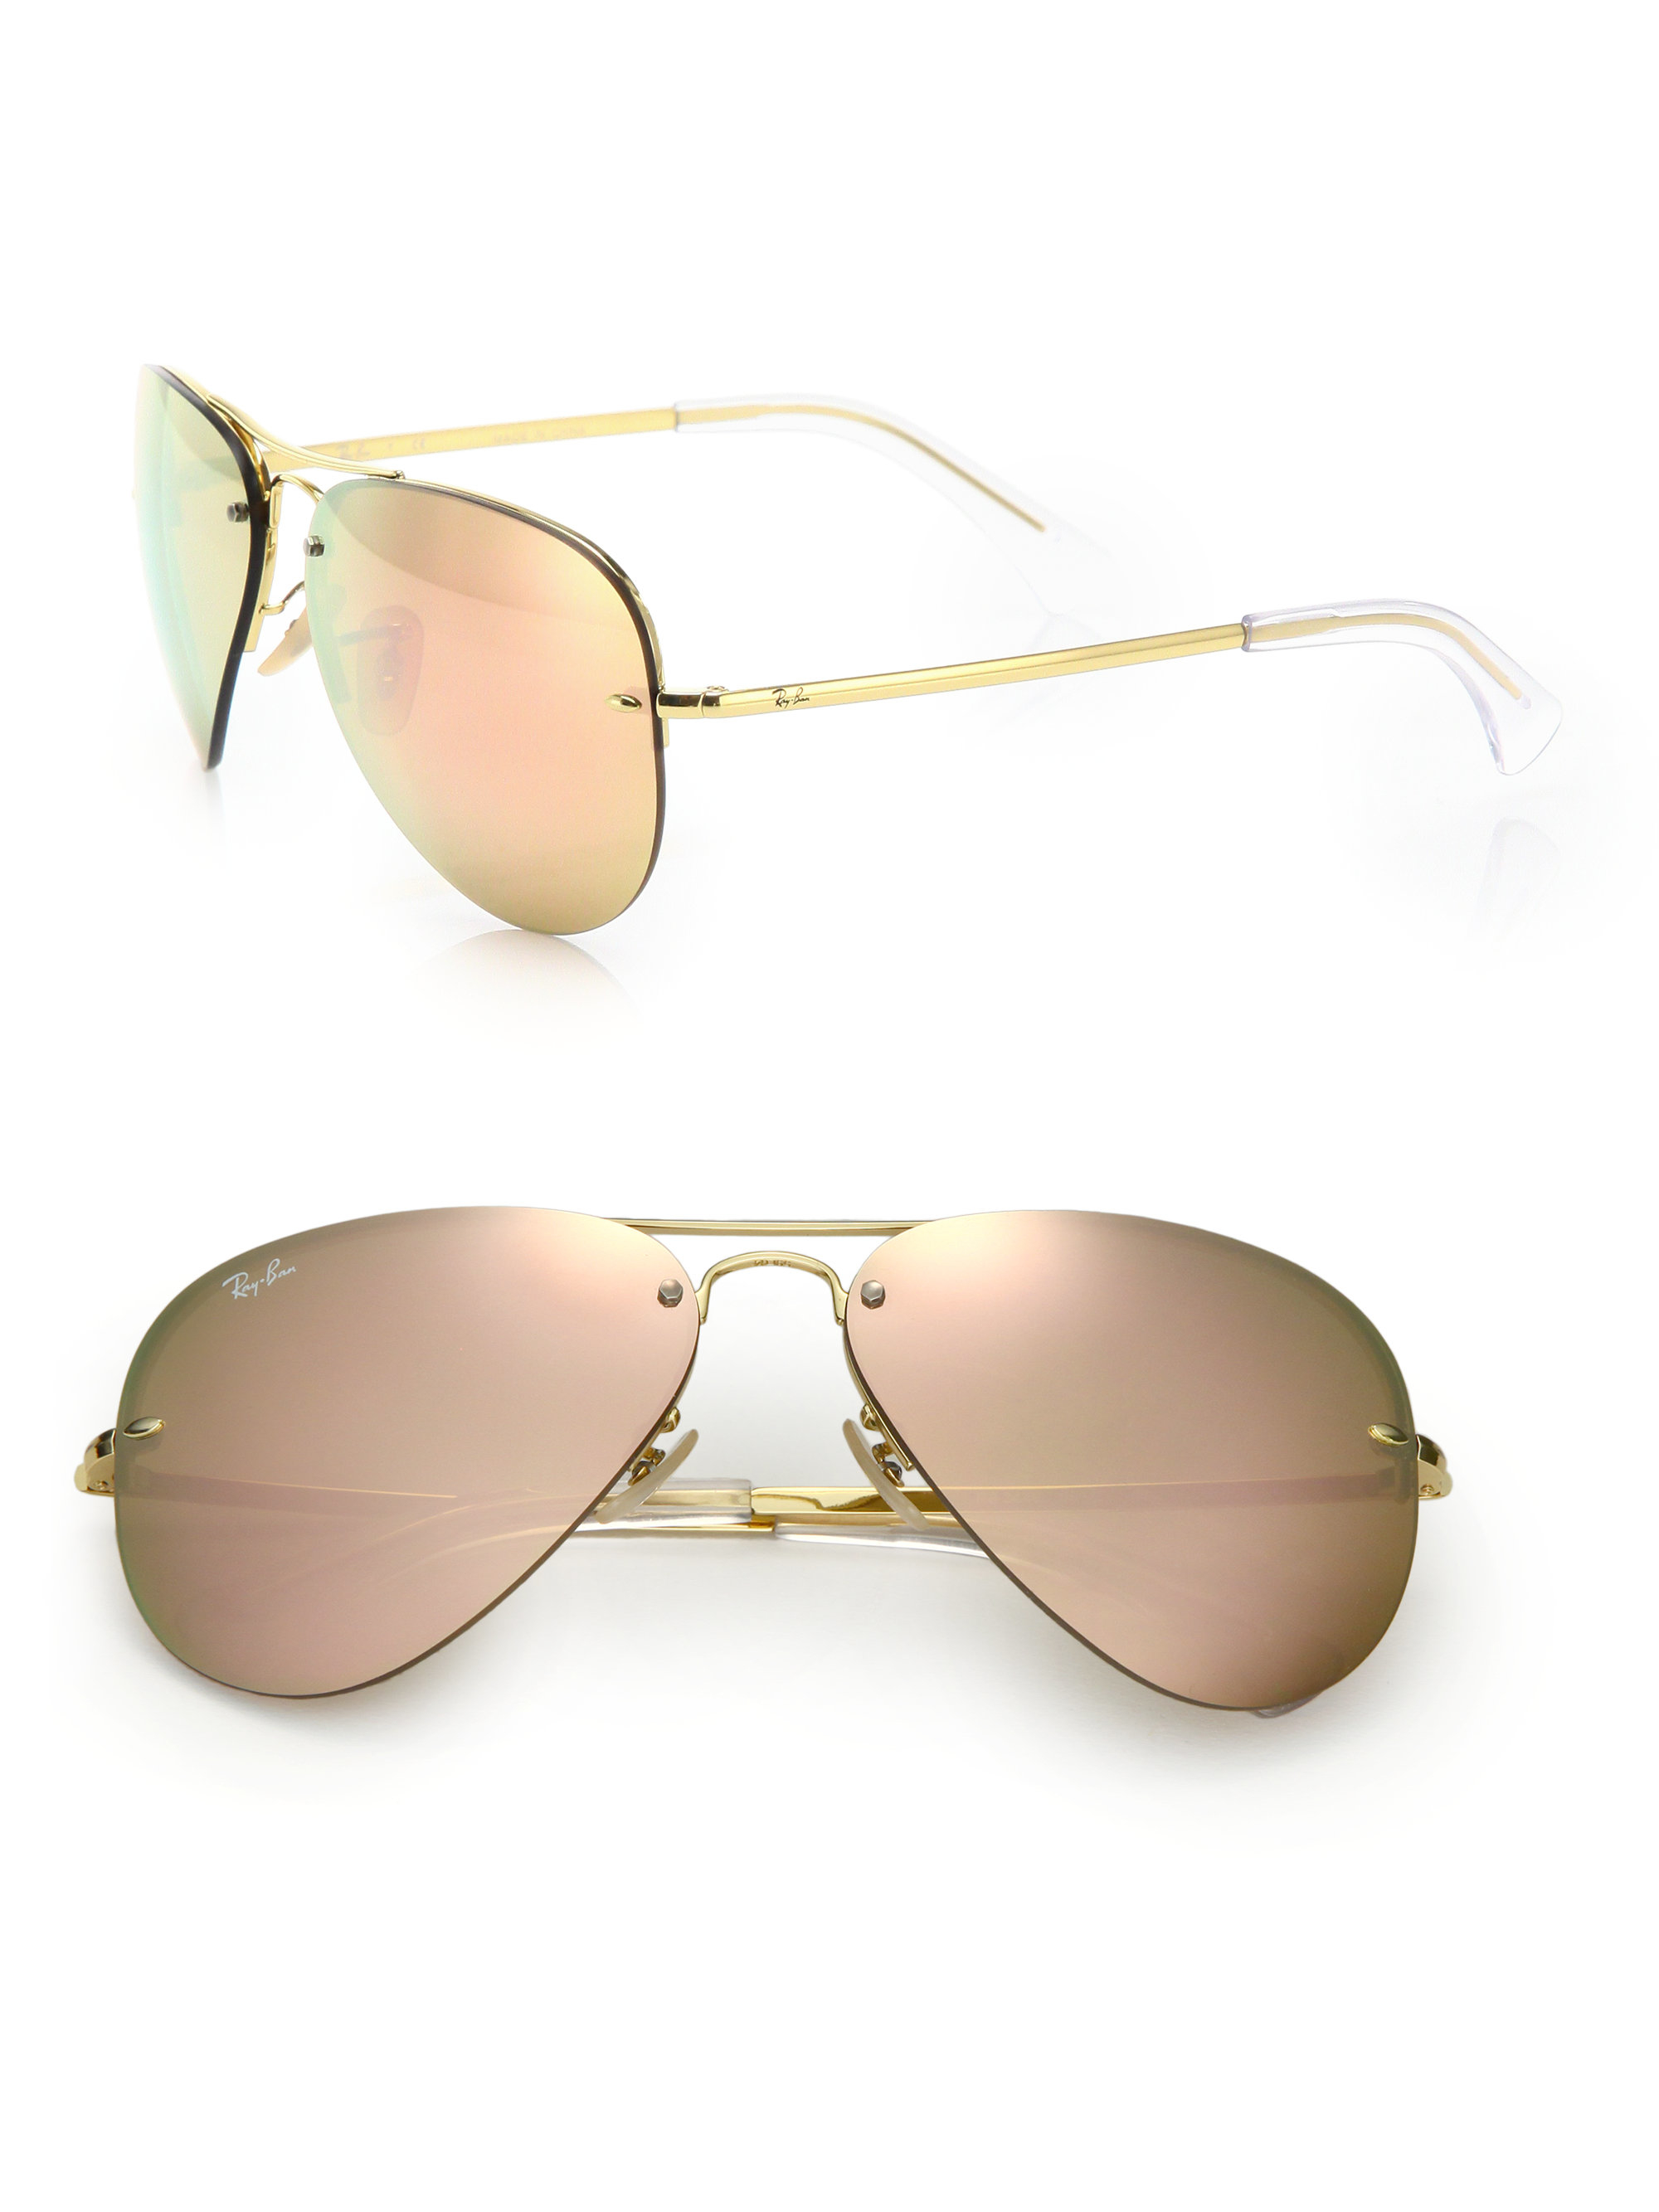 Ray Ban Pilot Metal Aviator Mirrored Sunglasses In Pink Lyst